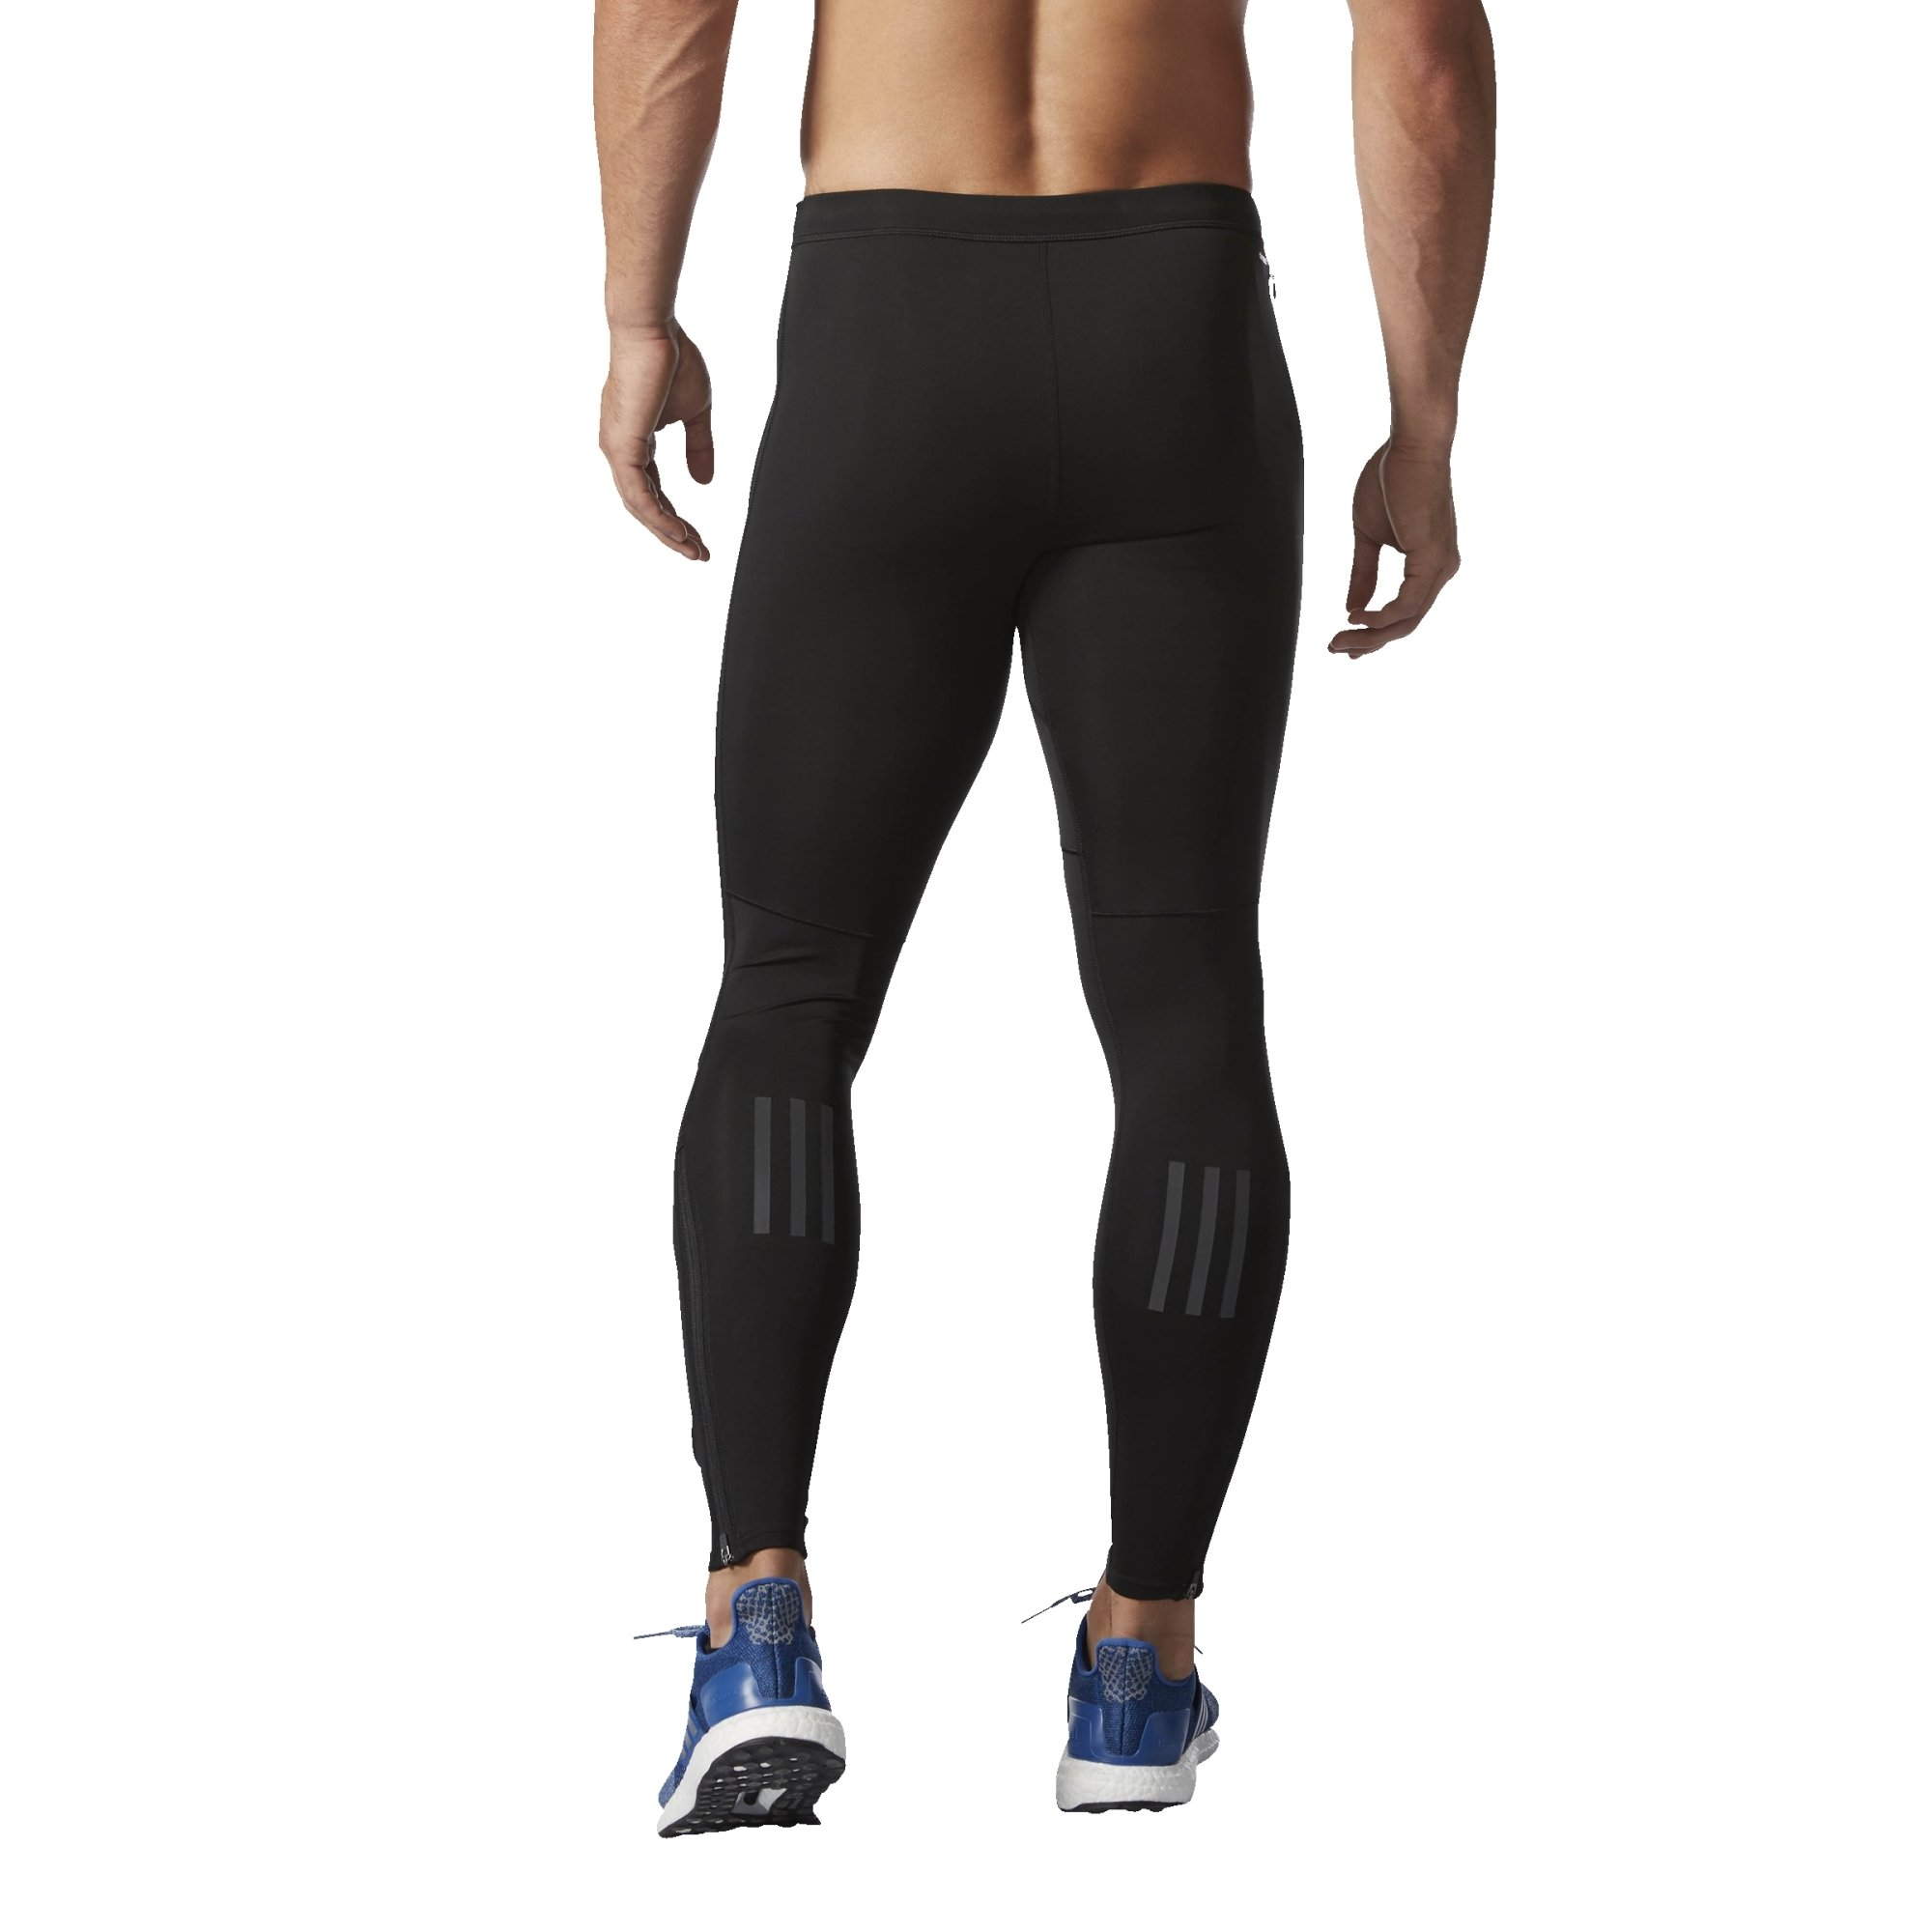 adidas Men's Running Response Long Tights, Black, Large by adidas (Image #2)